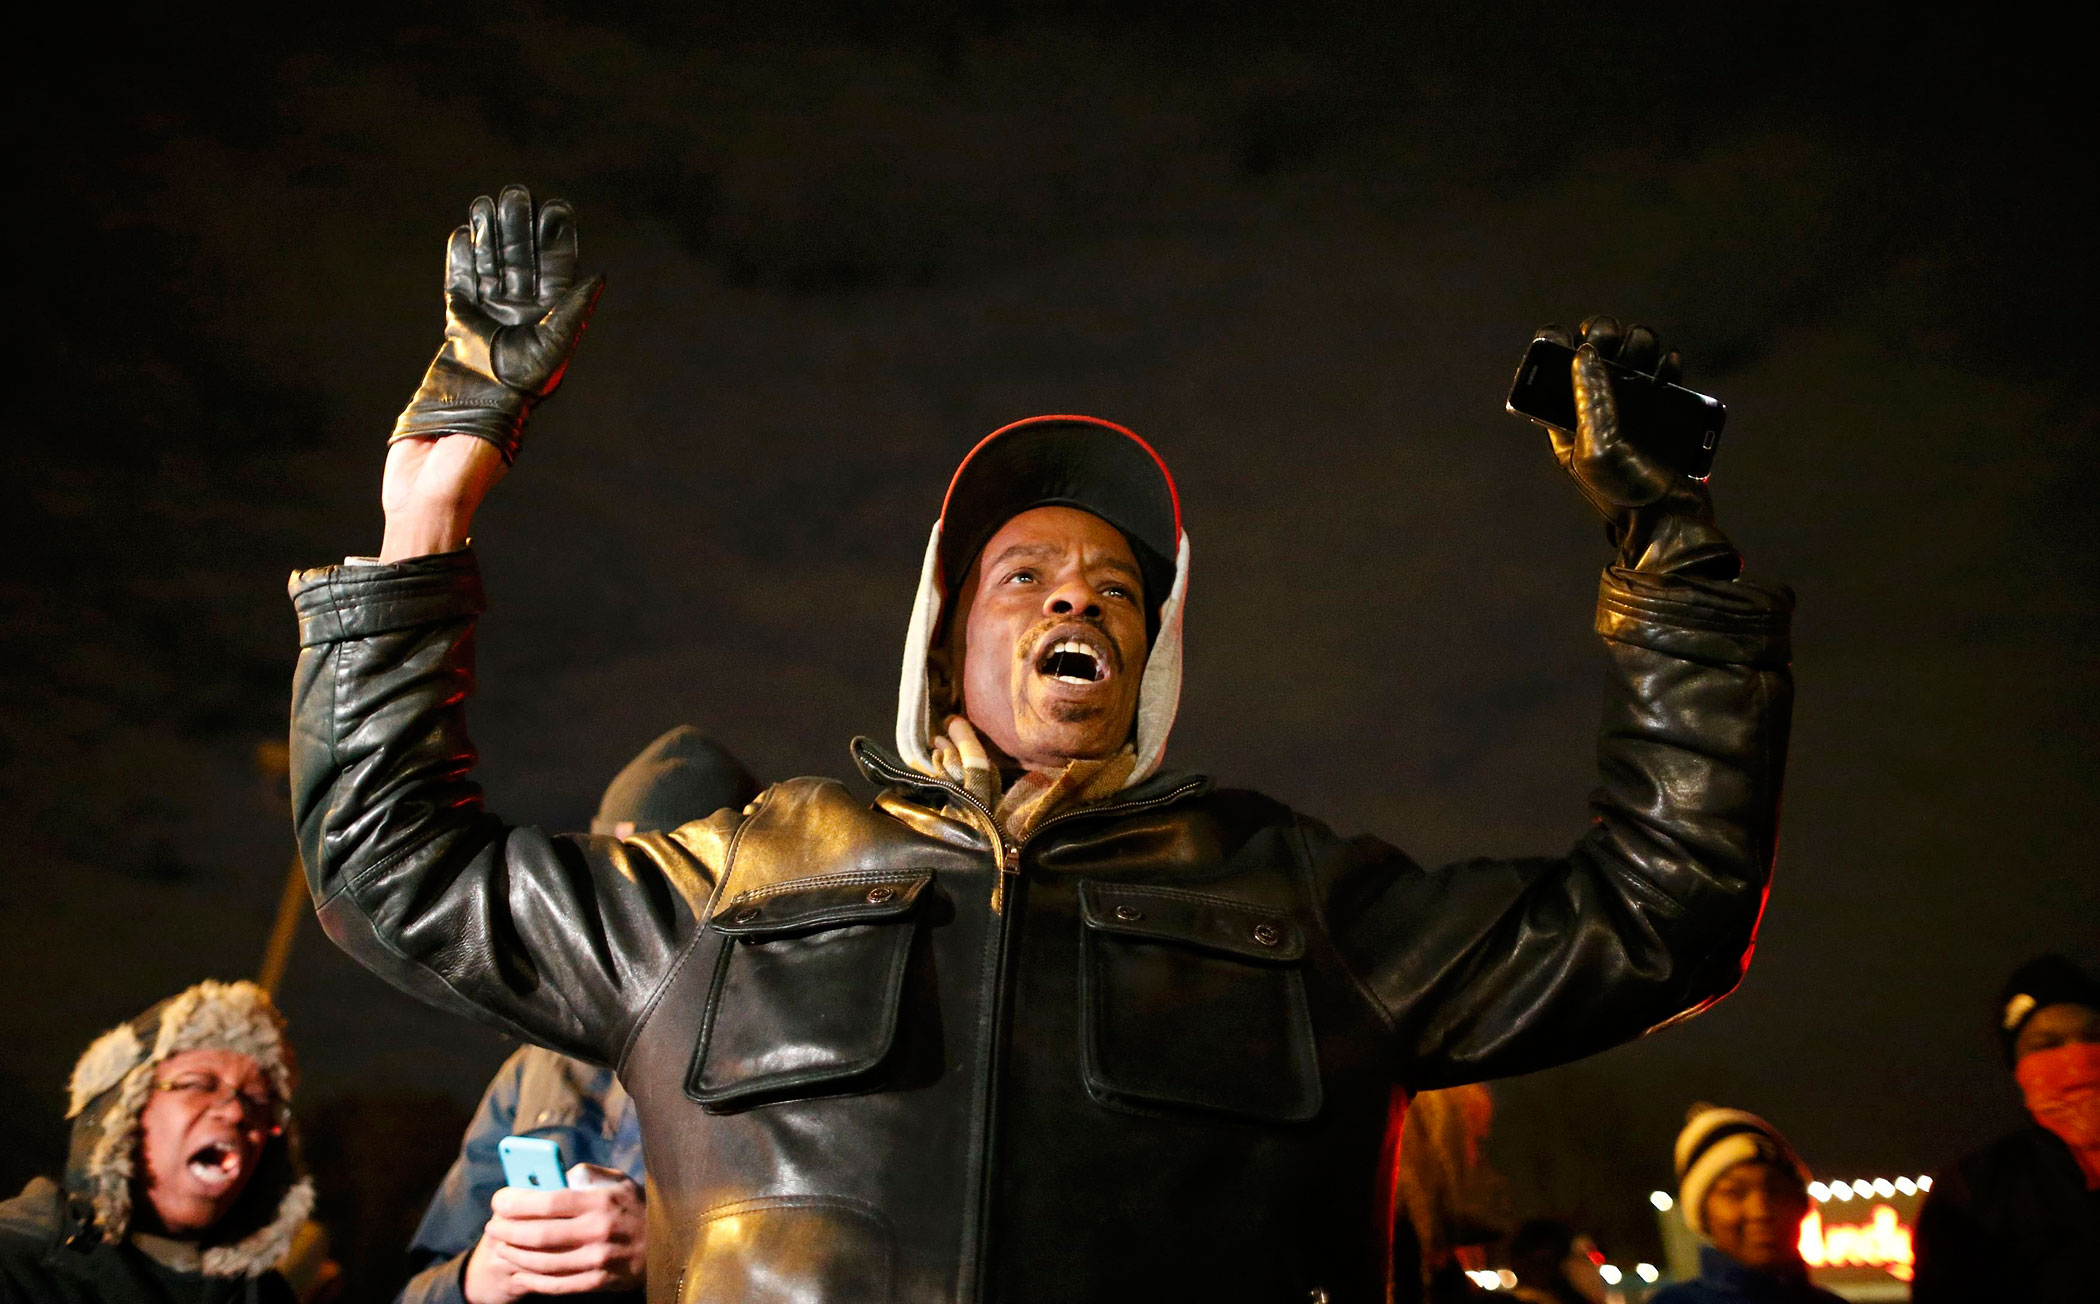 A protester holds his hands in the air outside the Ferguson Police Department in Ferguson, Missouri, November 24, 2014.